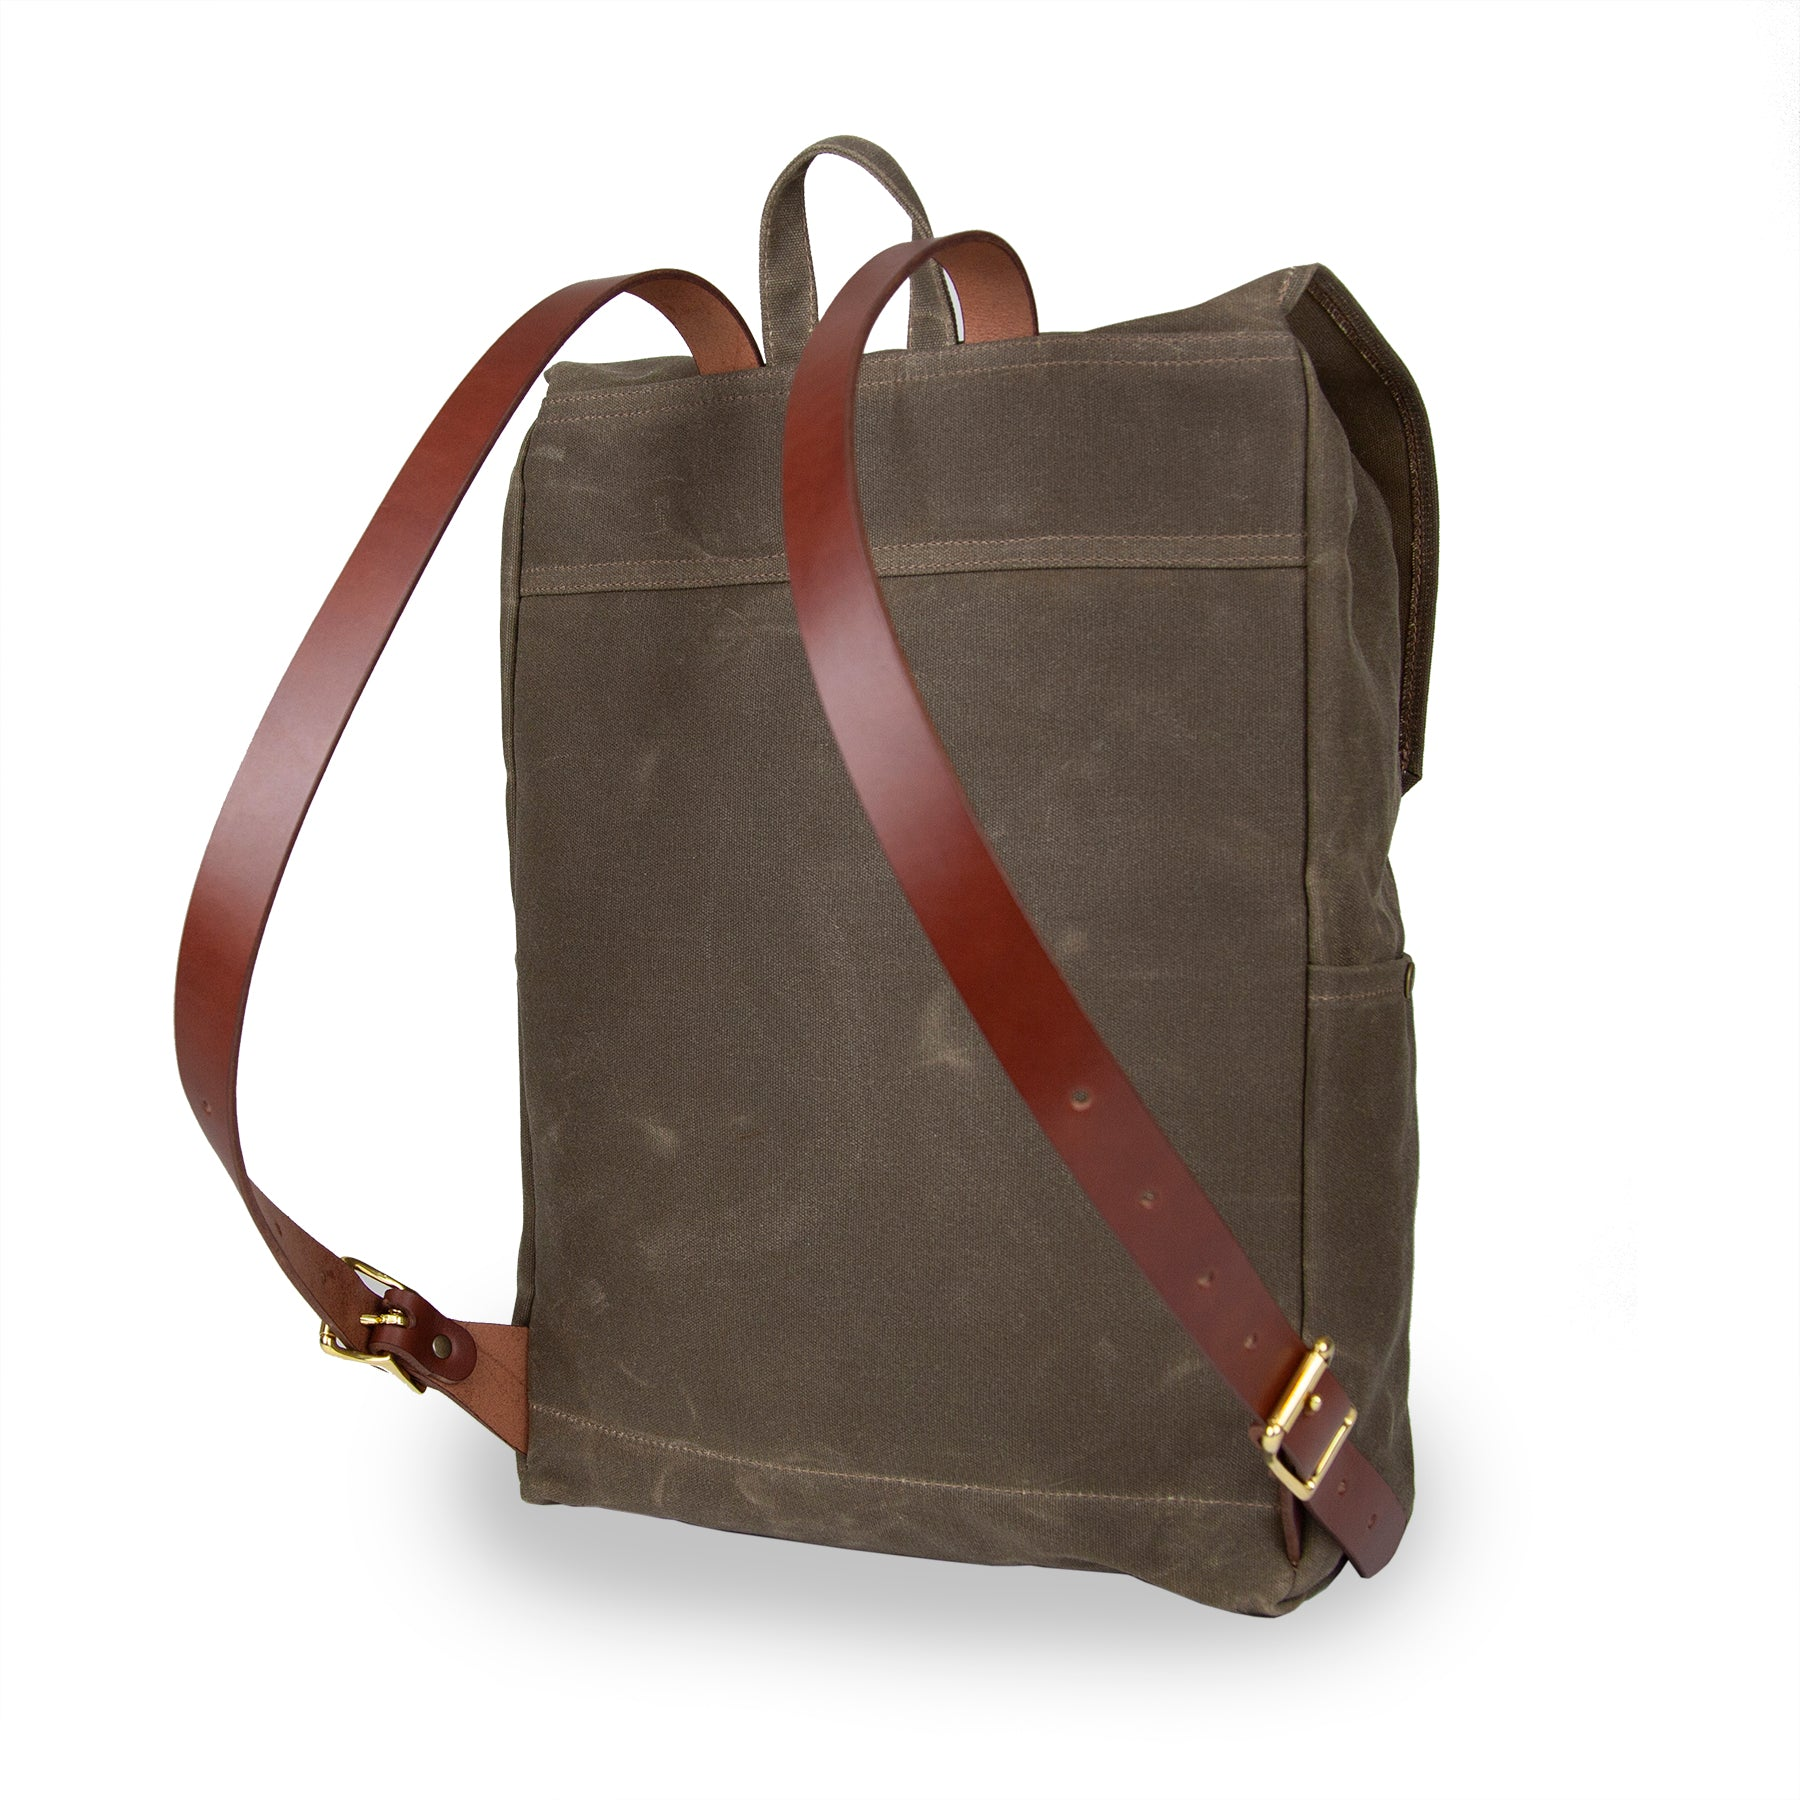 Day Tripper Backpack - Field Tan with Brown Leather